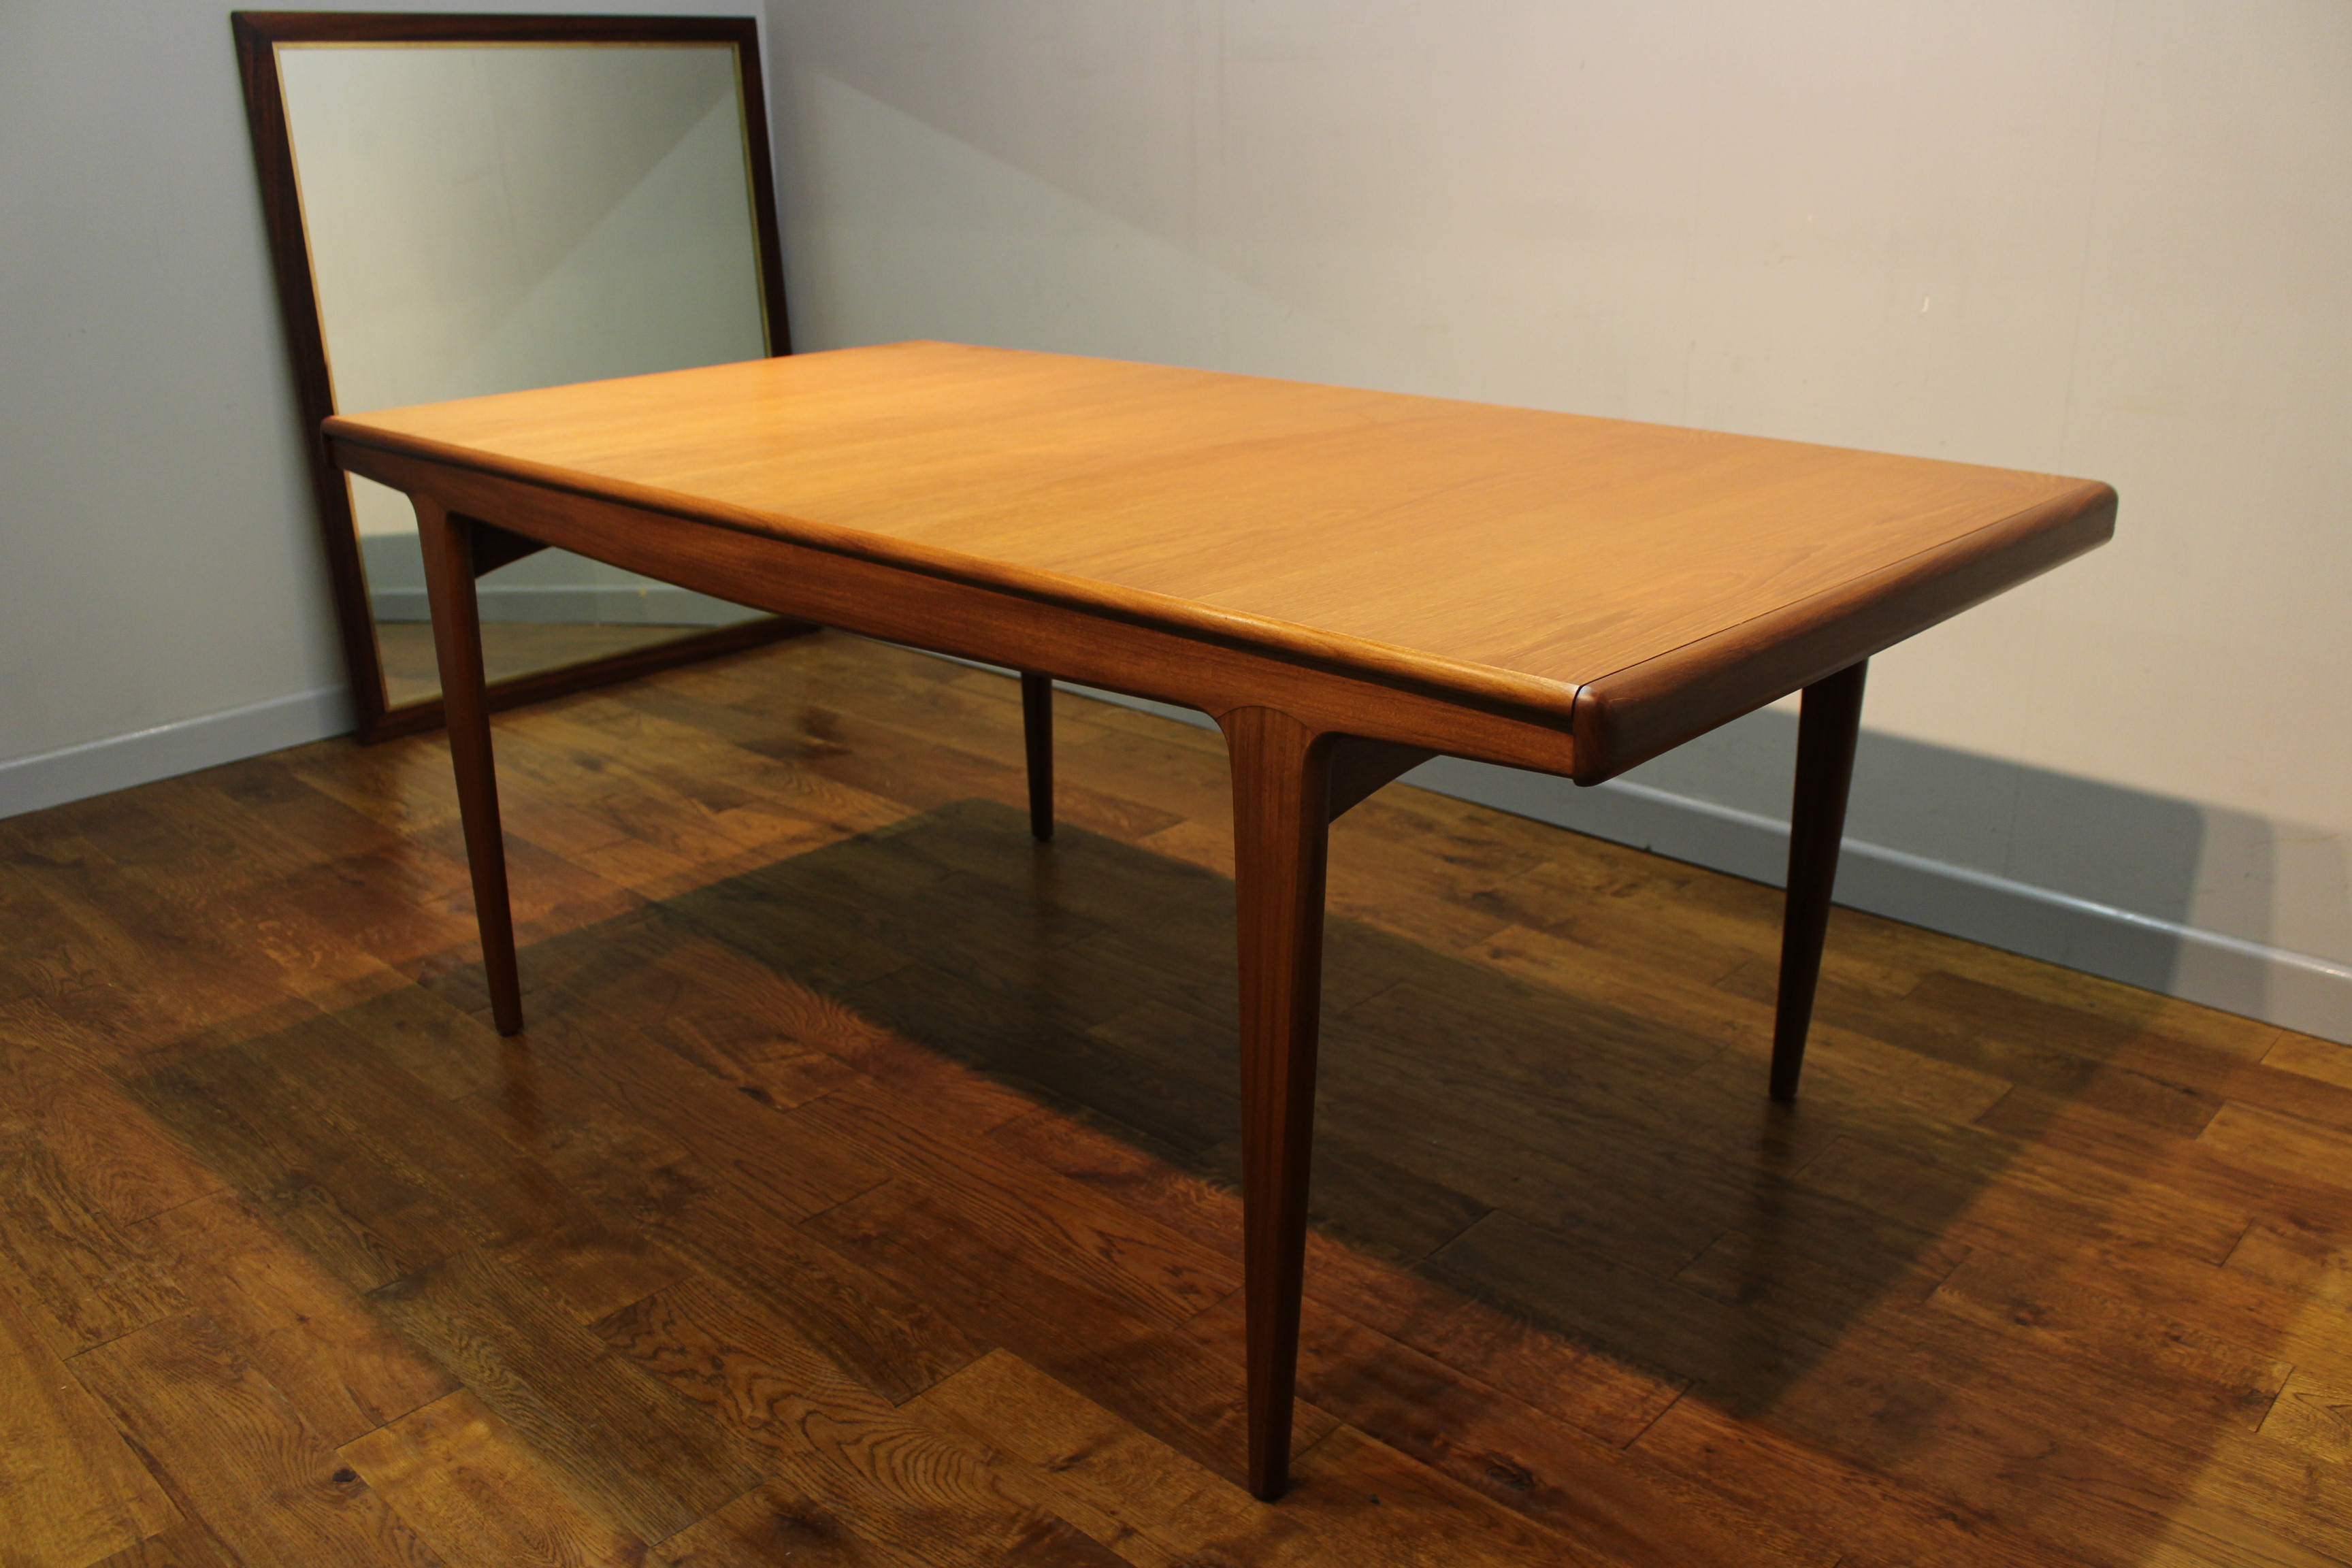 A Younger 810 seat Sequence teak dining table c 1968  : a younger large sequence teak dining table 4 from www.vintageretro.co.uk size 3456 x 2304 jpeg 1210kB